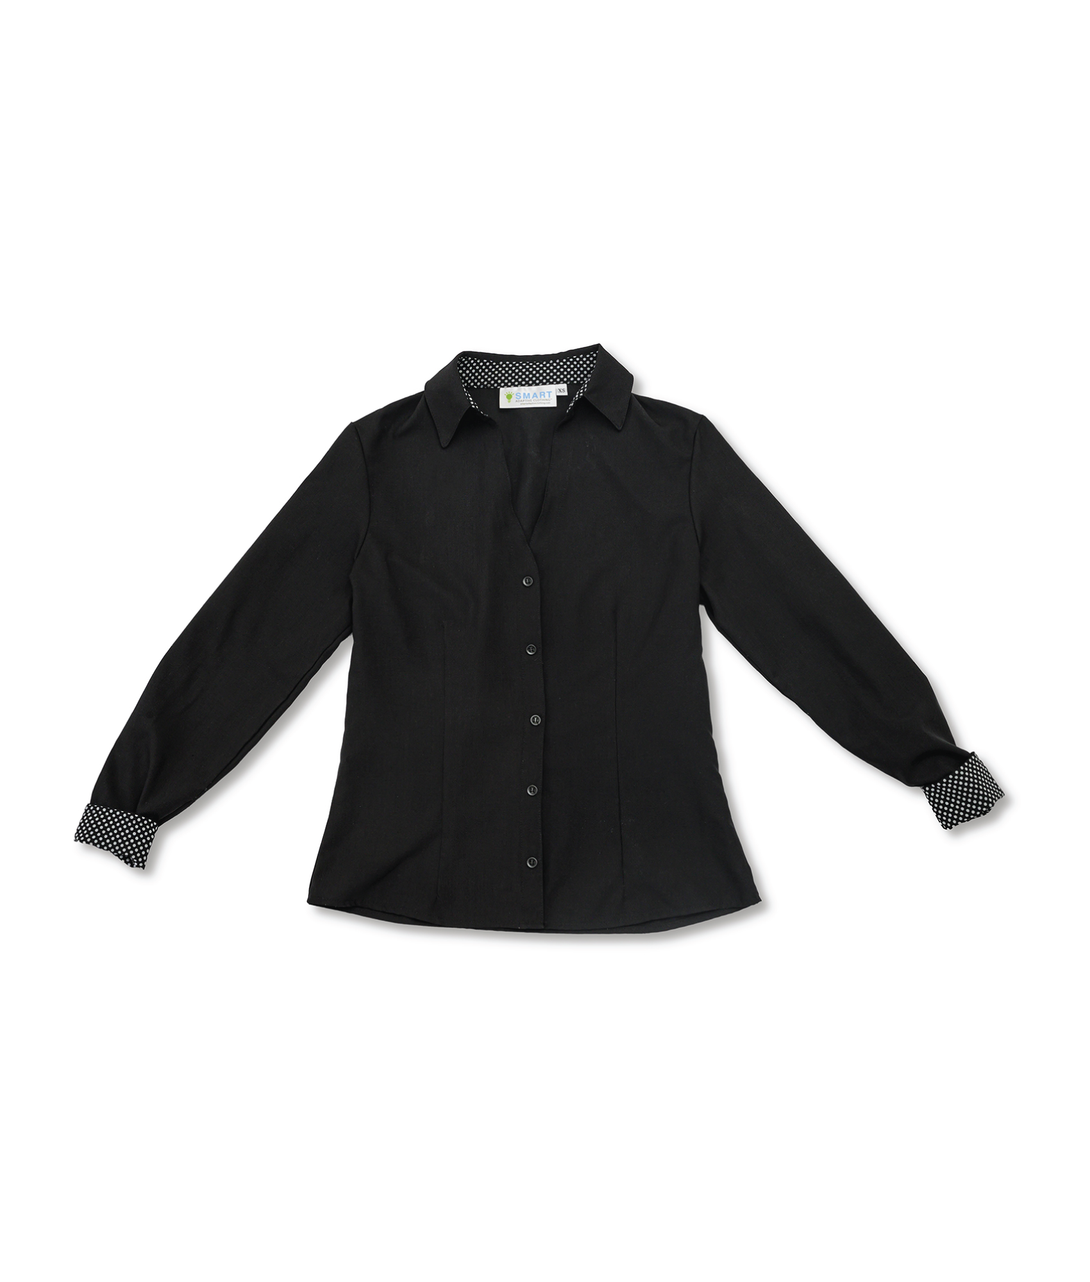 Alana Soul Adaptive Blouse in Black with White Trim